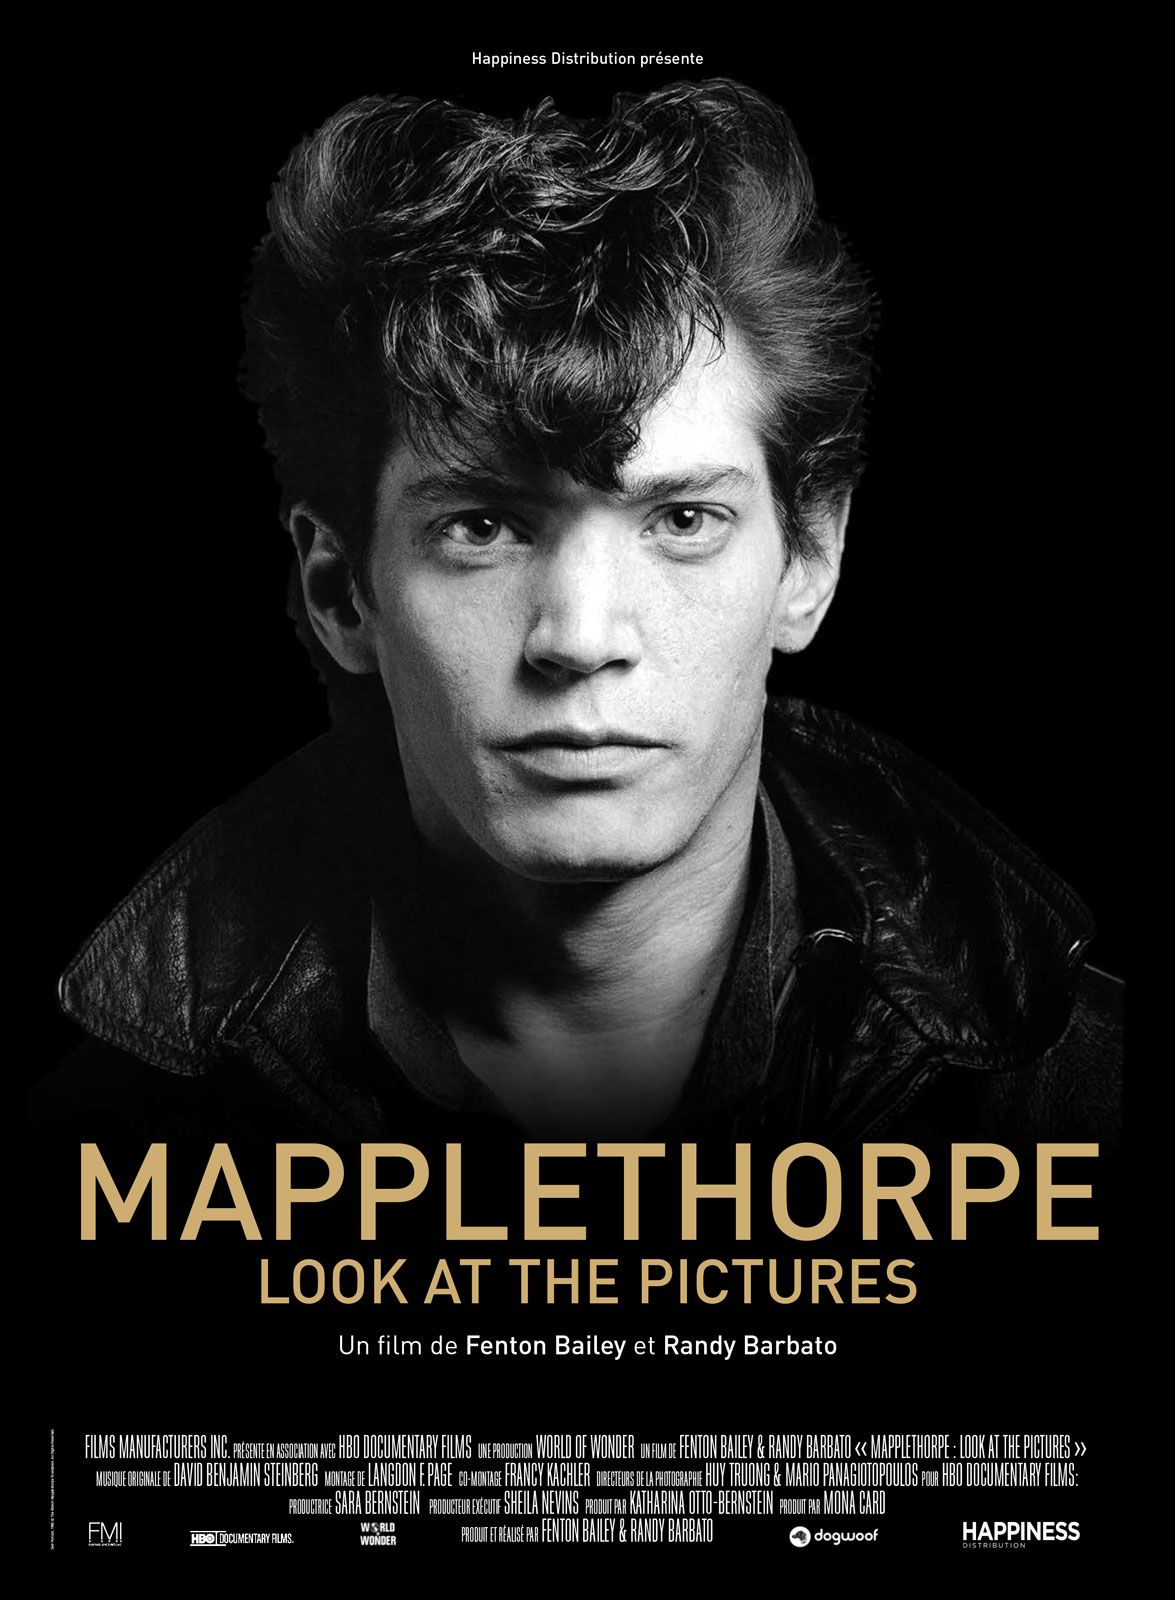 Mapplethorpe: Look at the Pictures - Documentaire (2016)